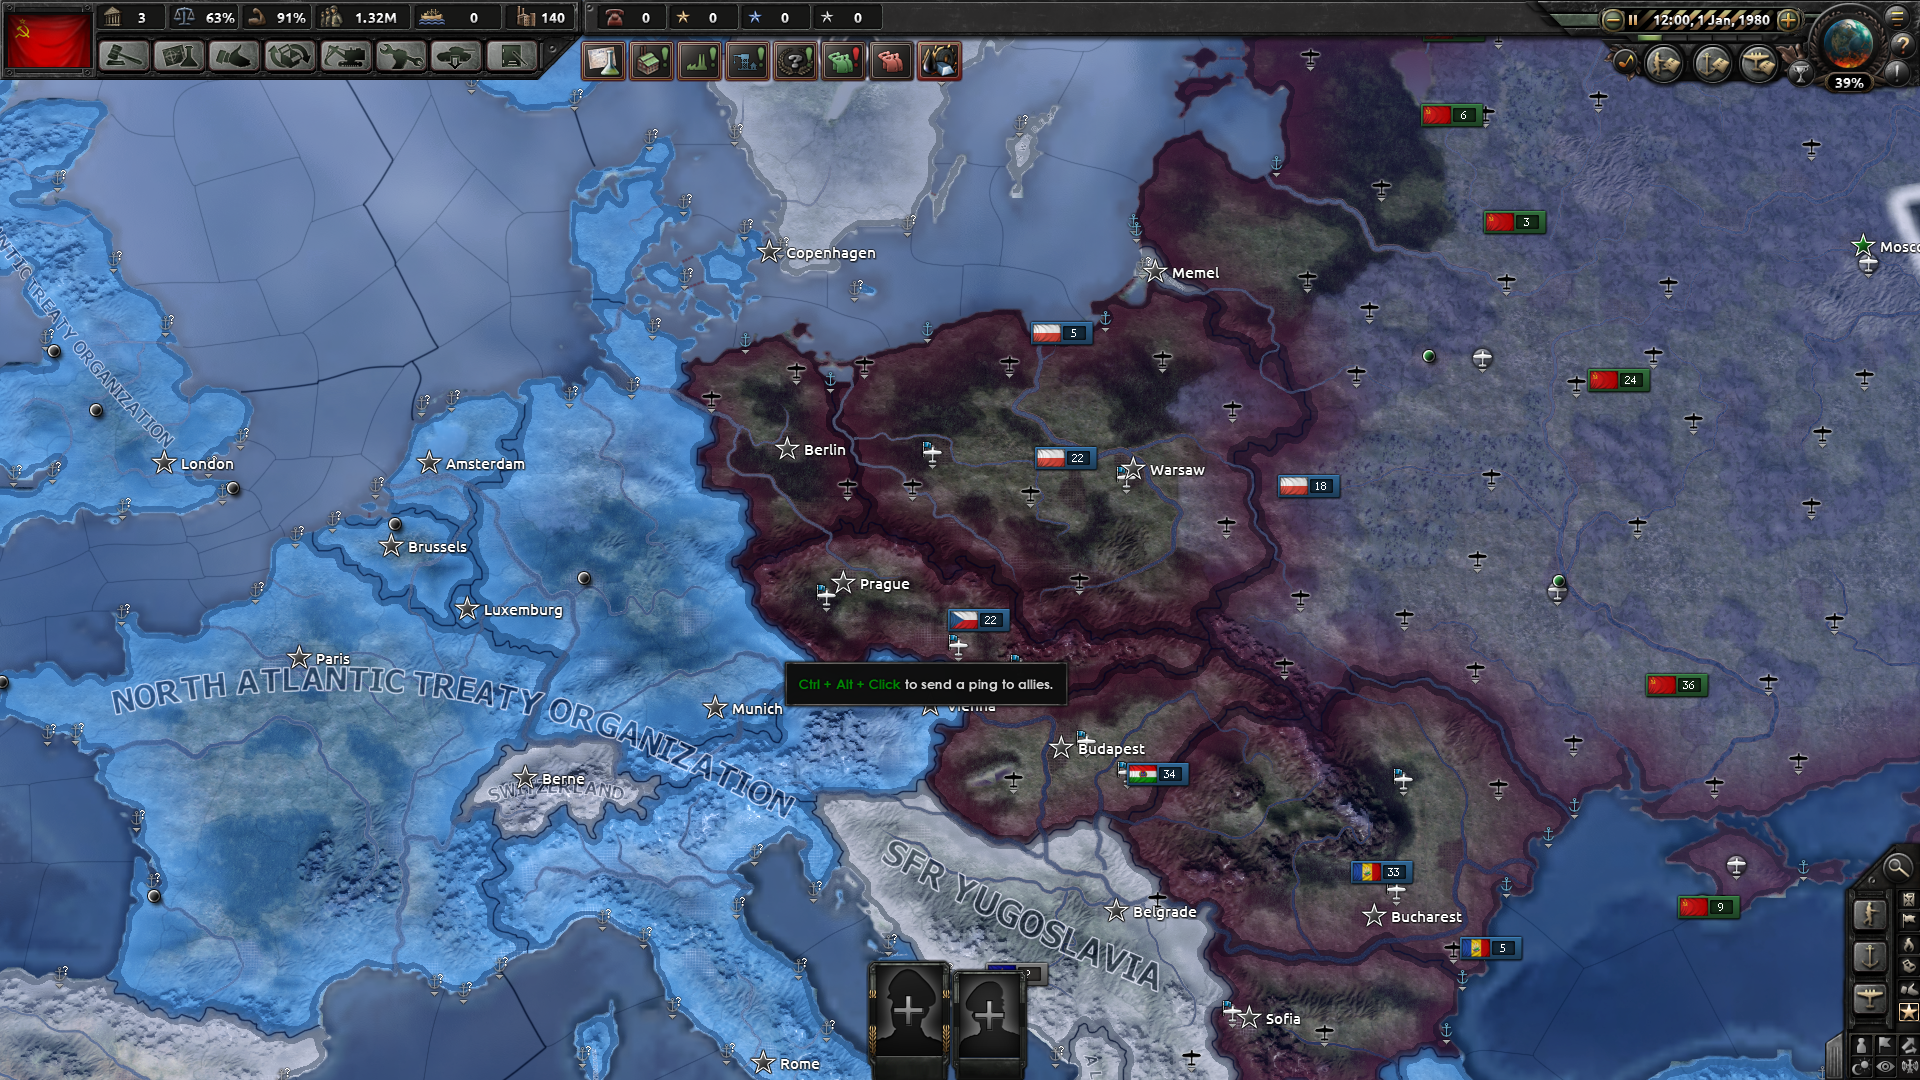 hoi4 2 image - Red Dawn Modification for Hearts of Iron IV - Mod DB